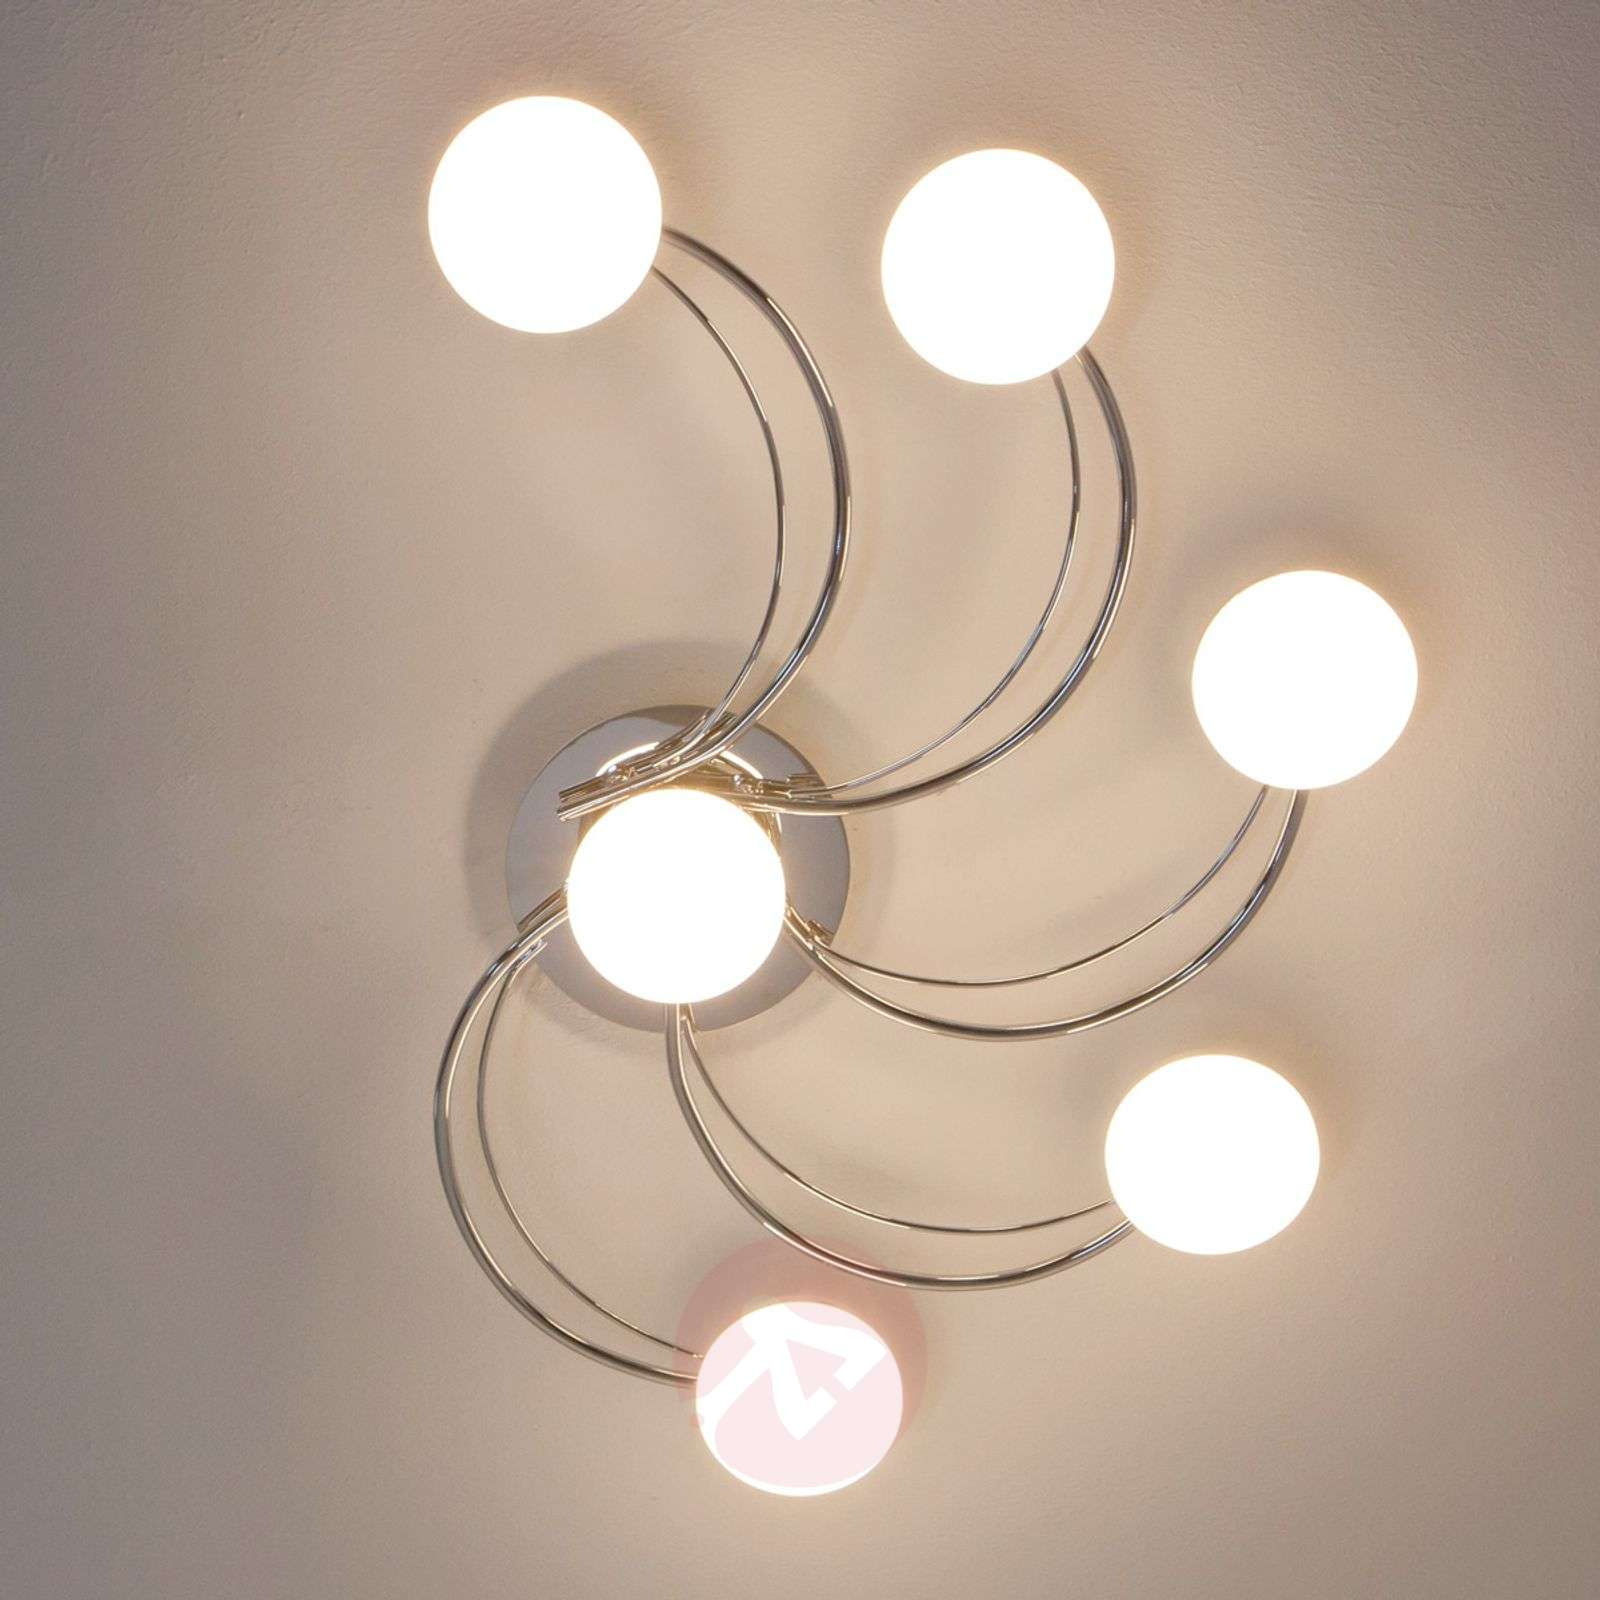 Lillith ceiling light with powerful LEDs-9981020-01